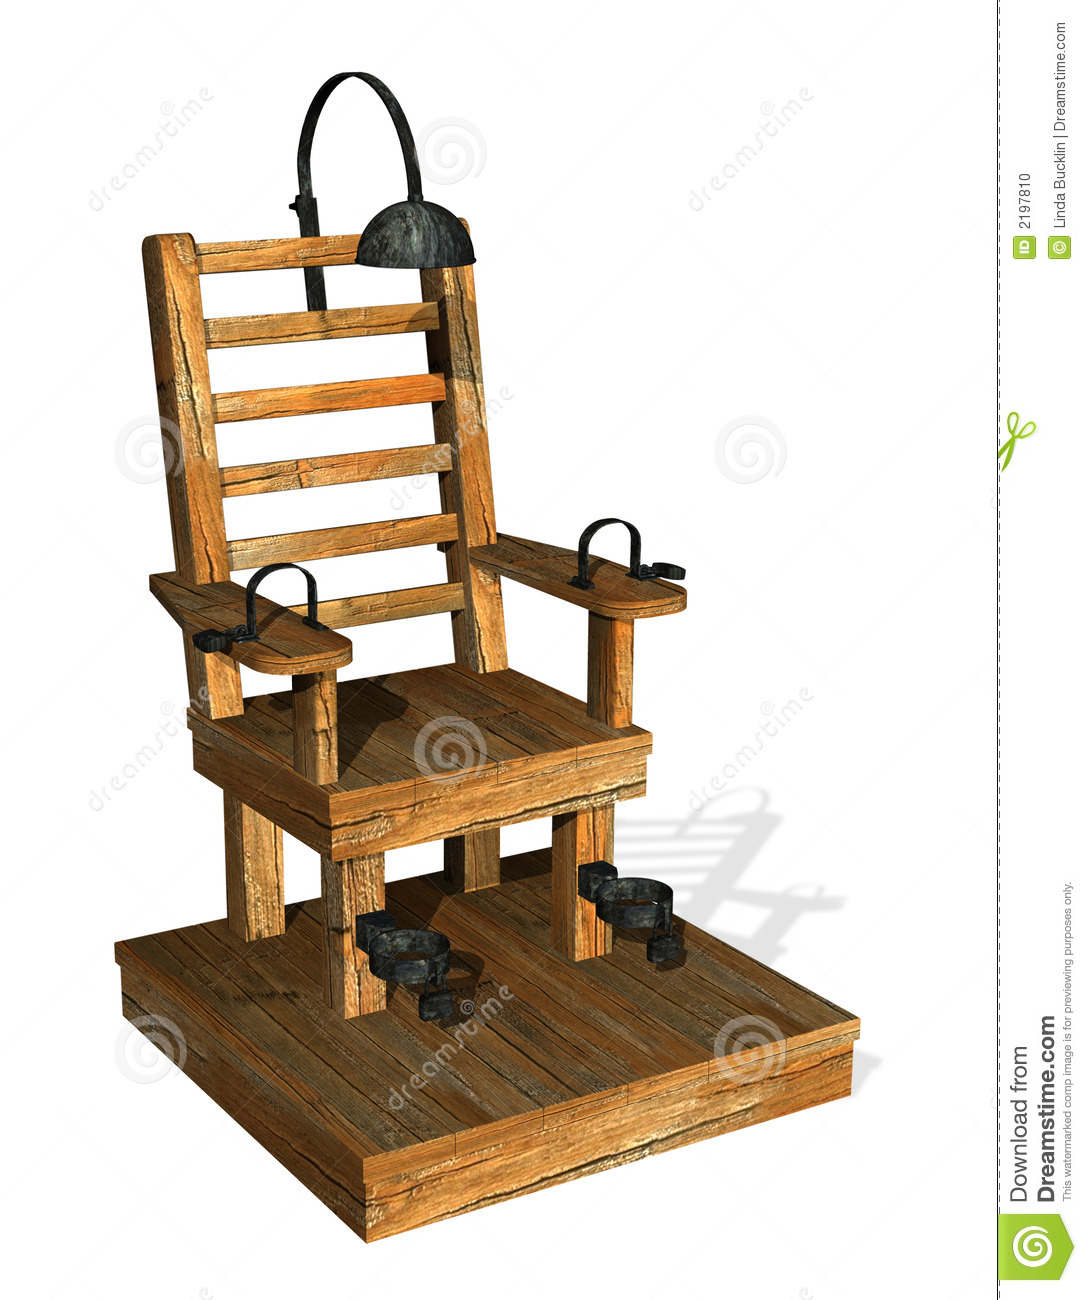 Electric Chair Photo Image 2197810 – Electirc Chair